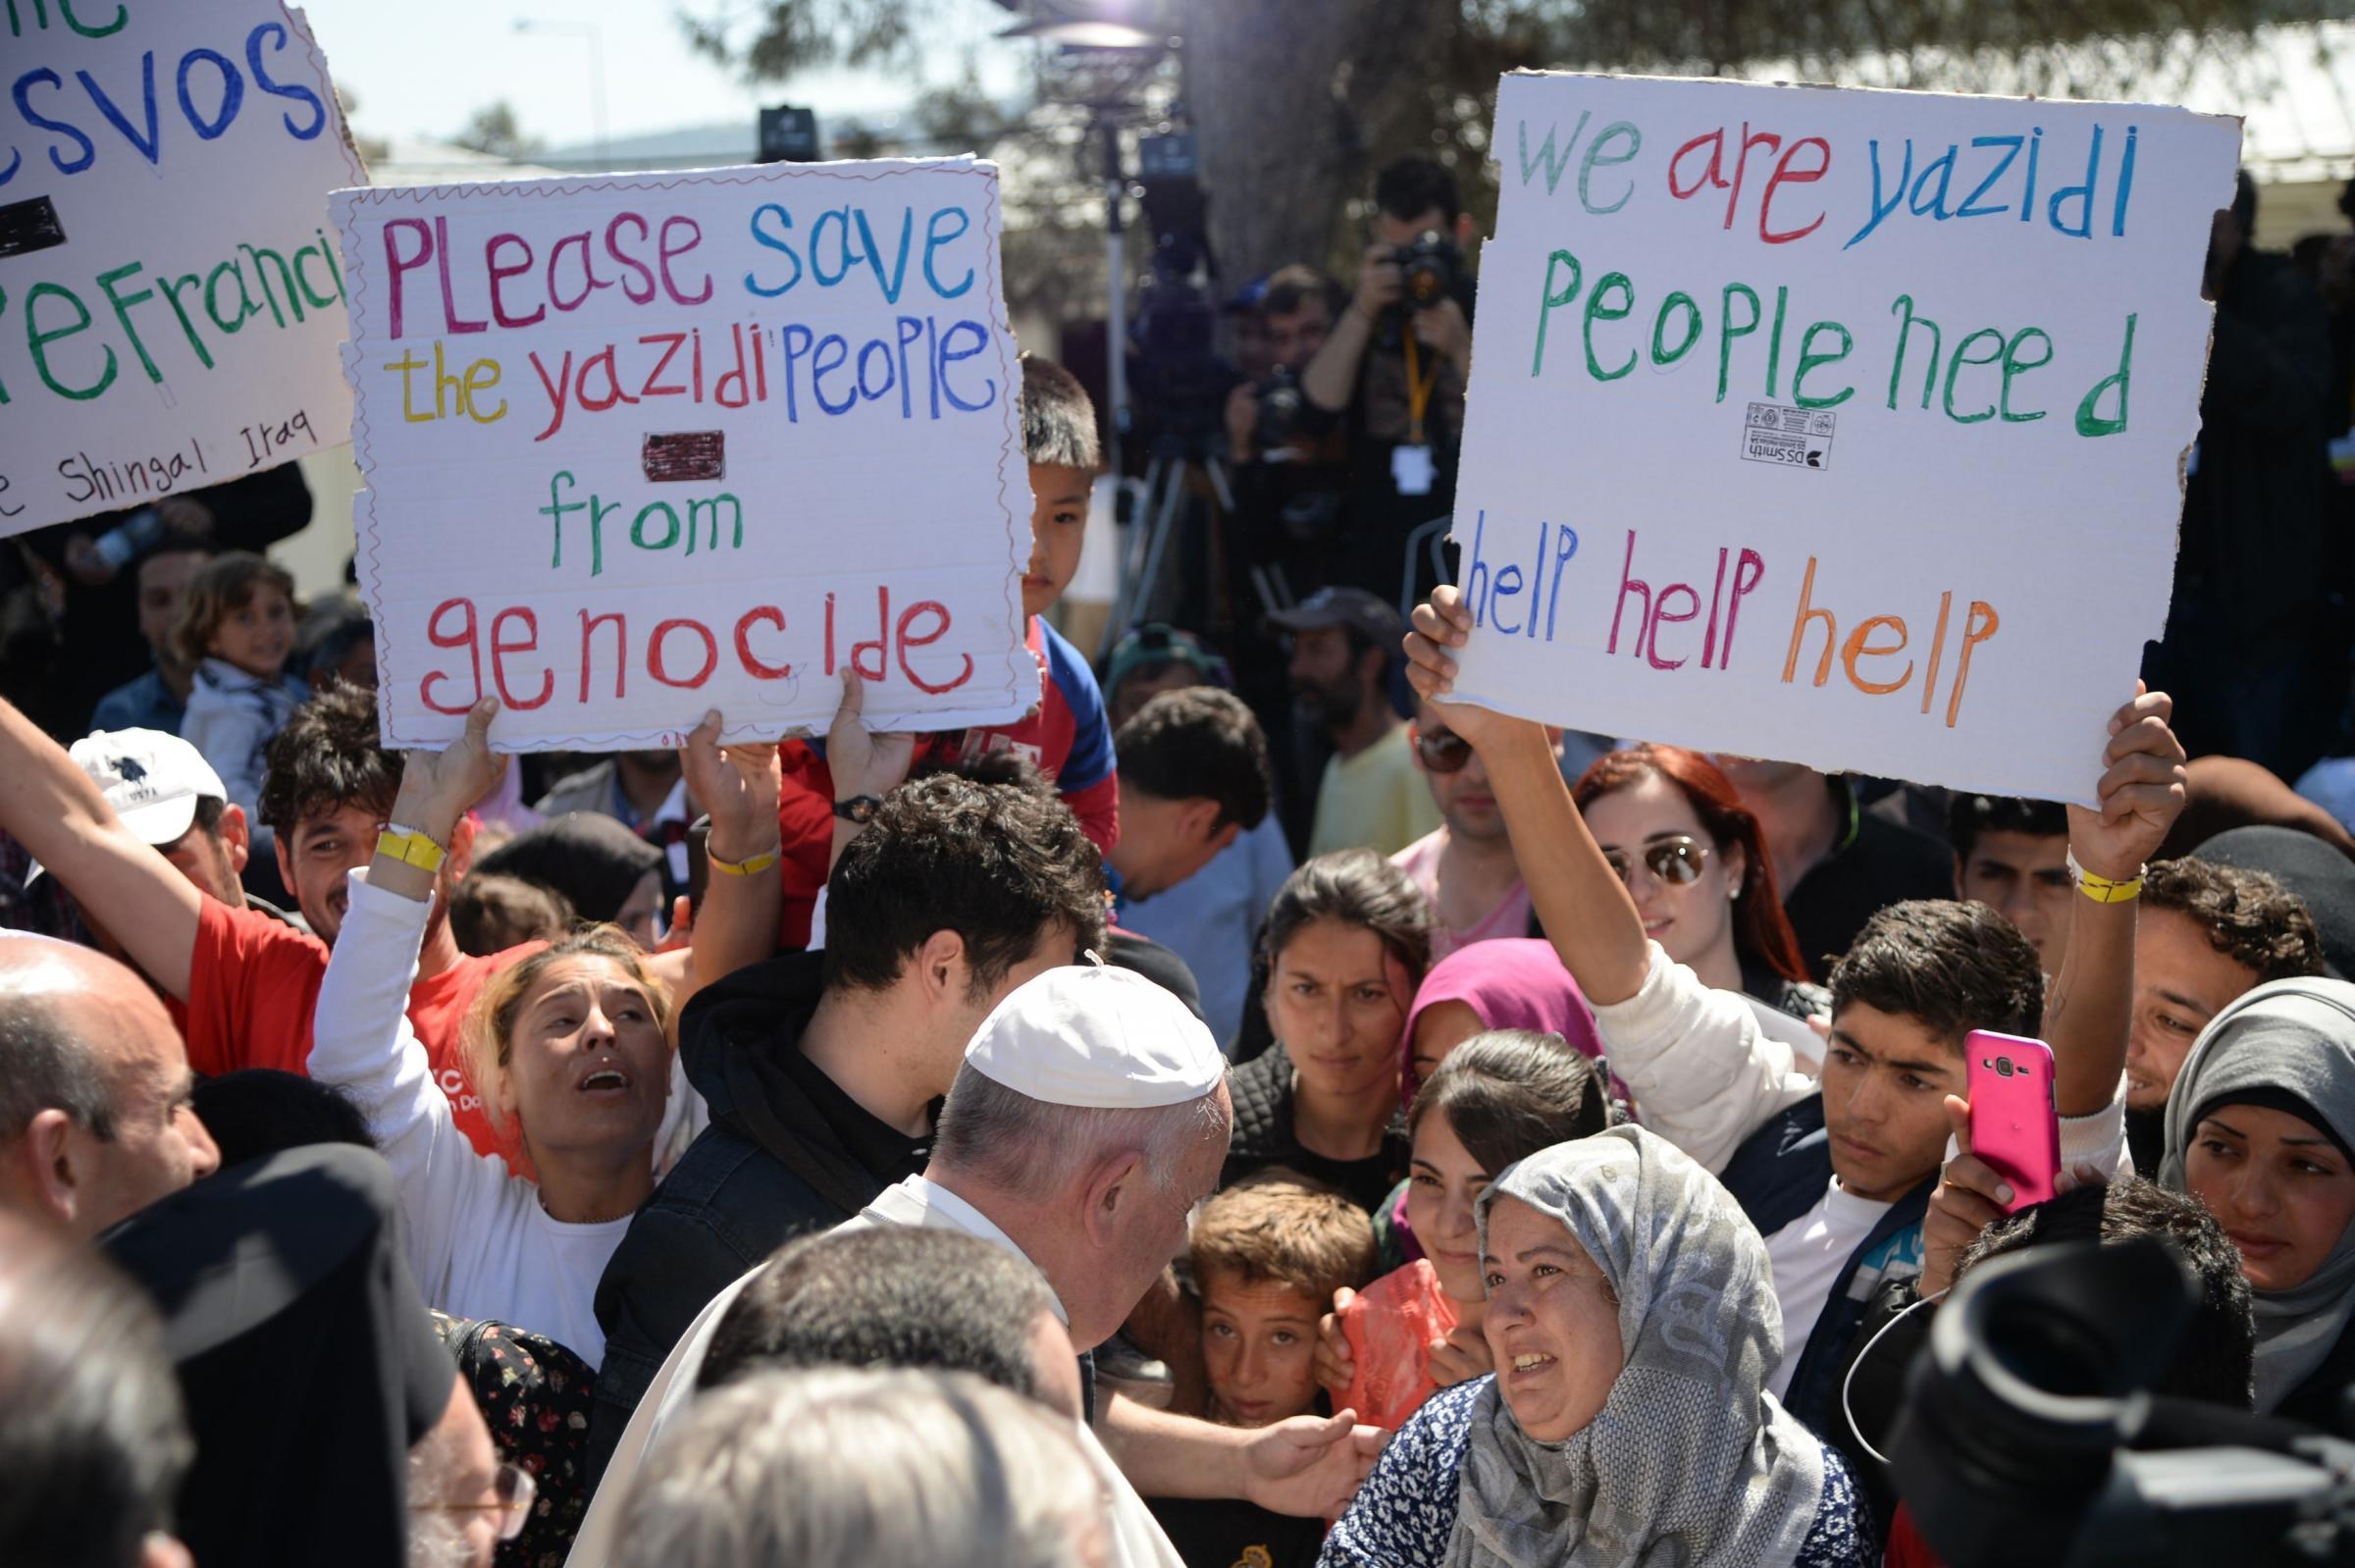 Pope Francis takes 12 Syrian refugees to vatican after lesbos visit    HeraldScotland